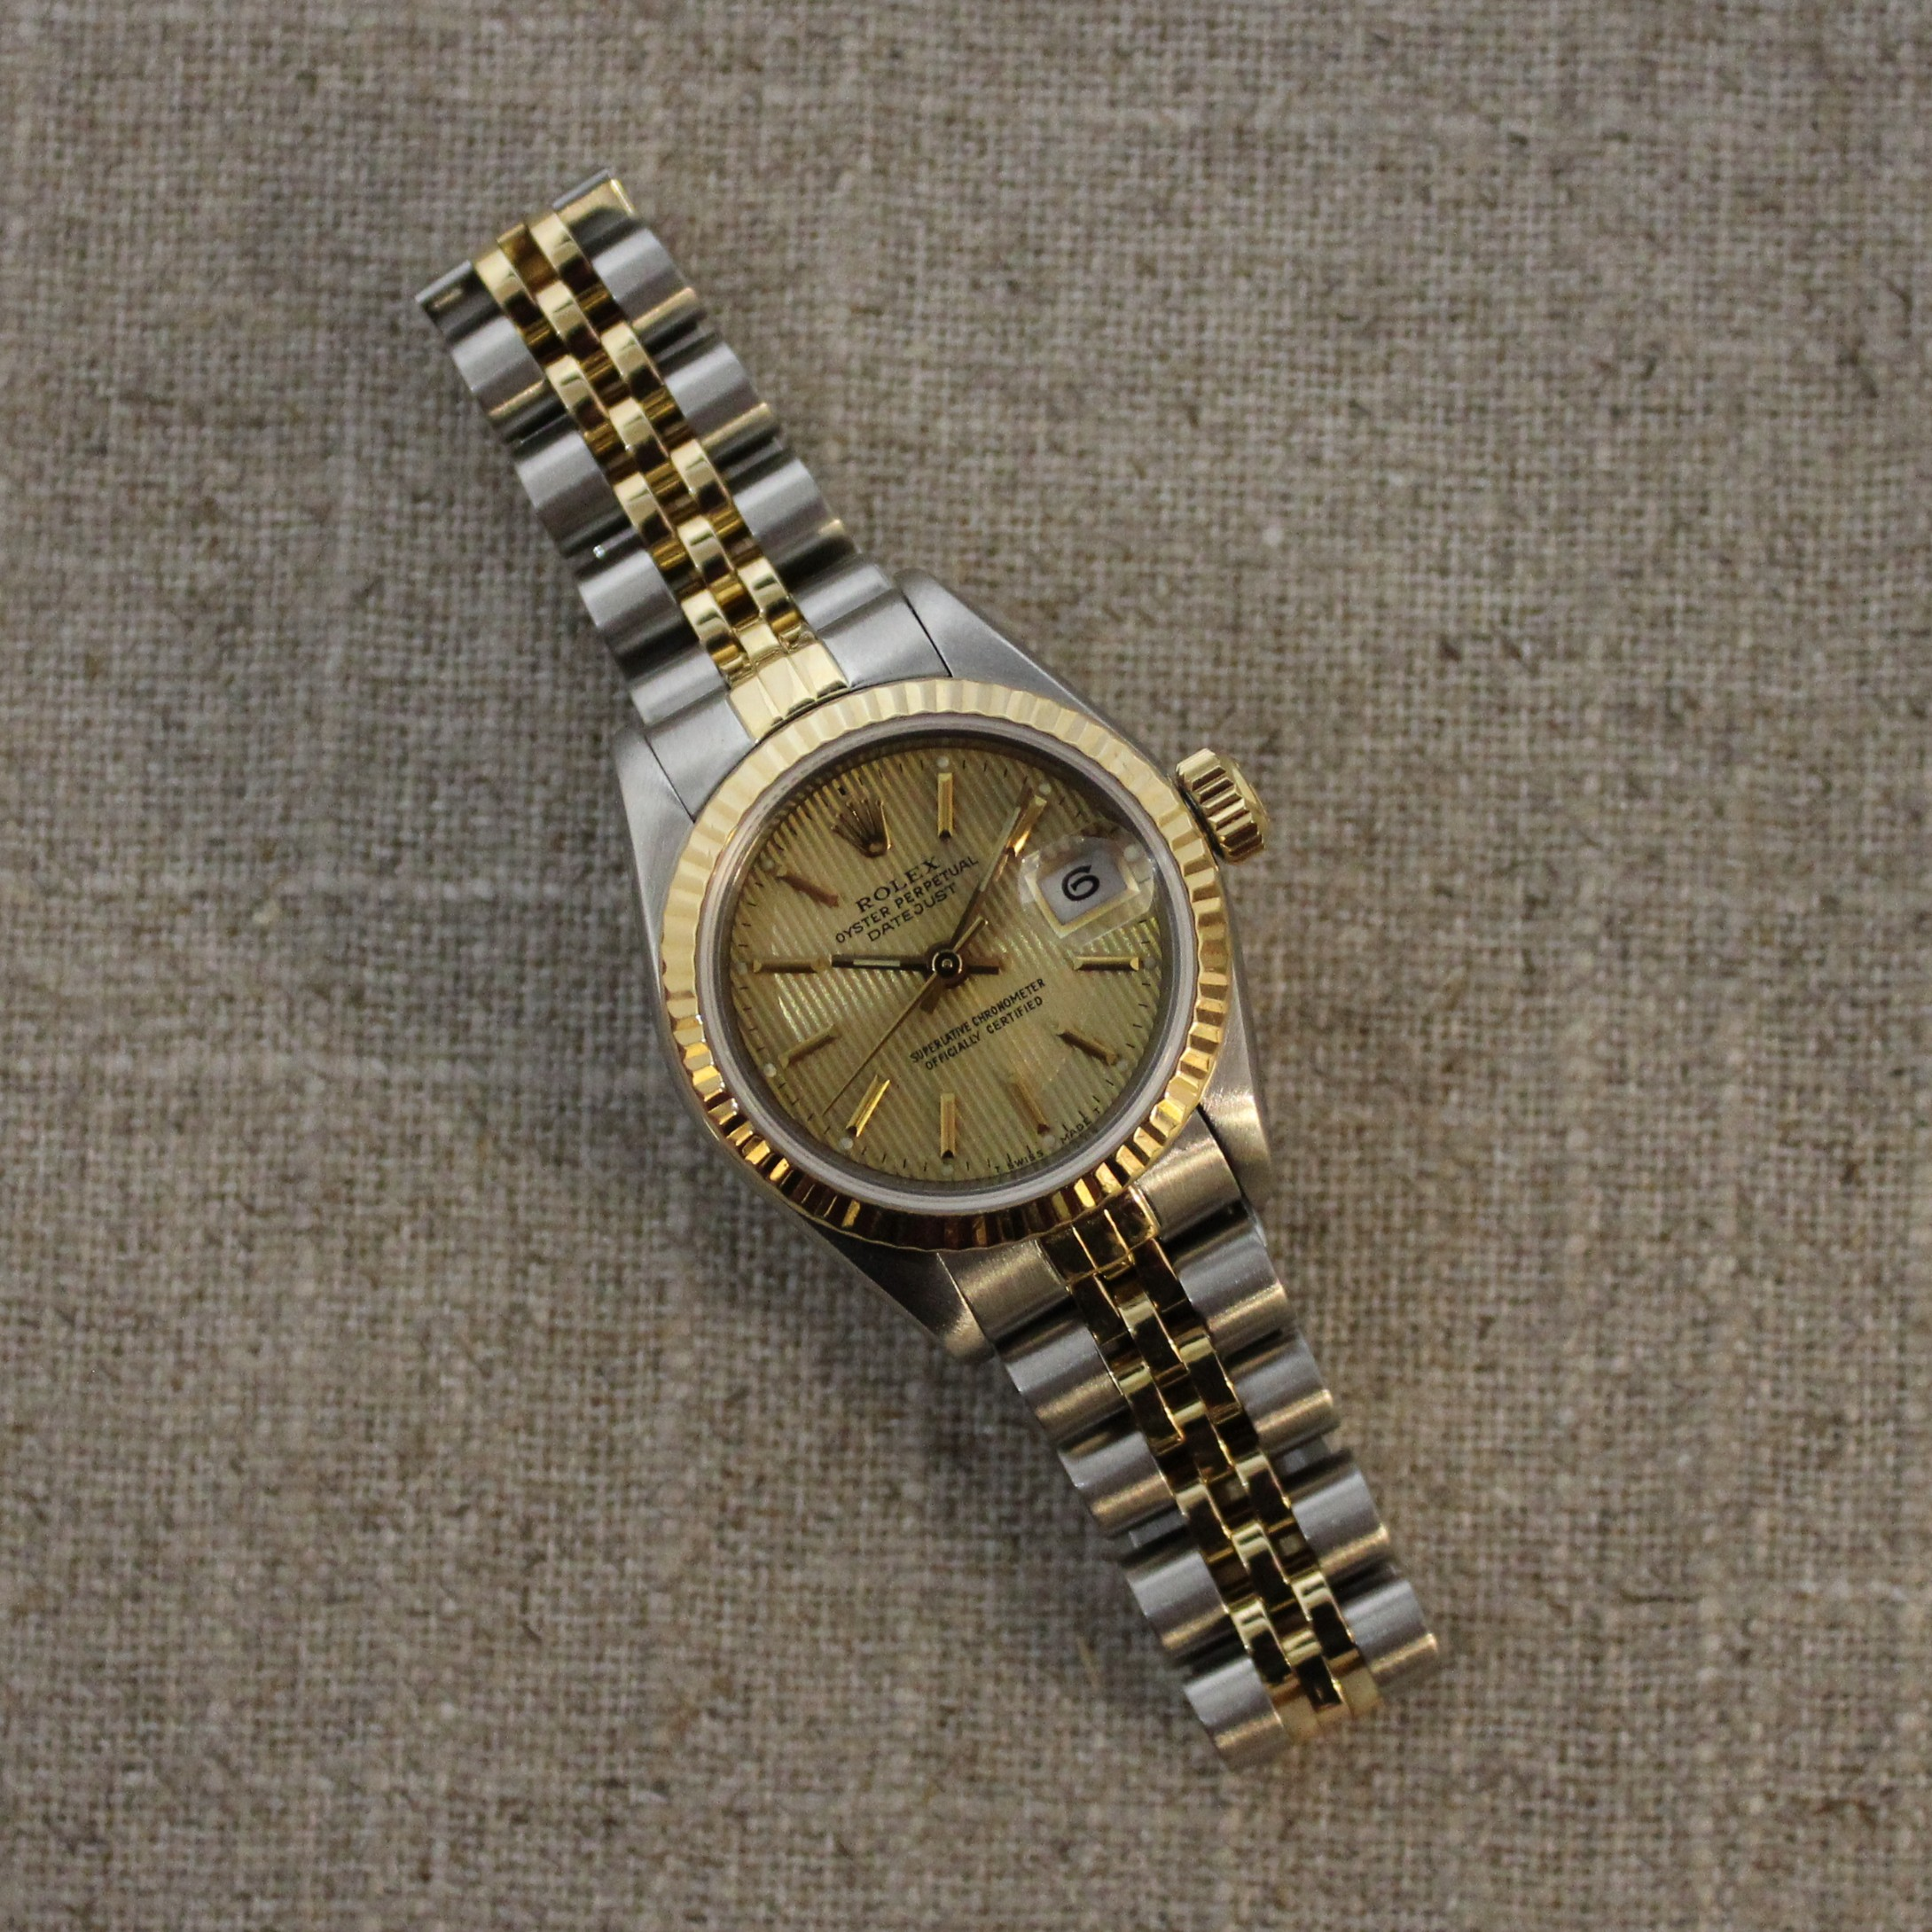 STAINLESS STEEL AND 18K YELLOW GOLD ROLEX DATEJUST 26MM